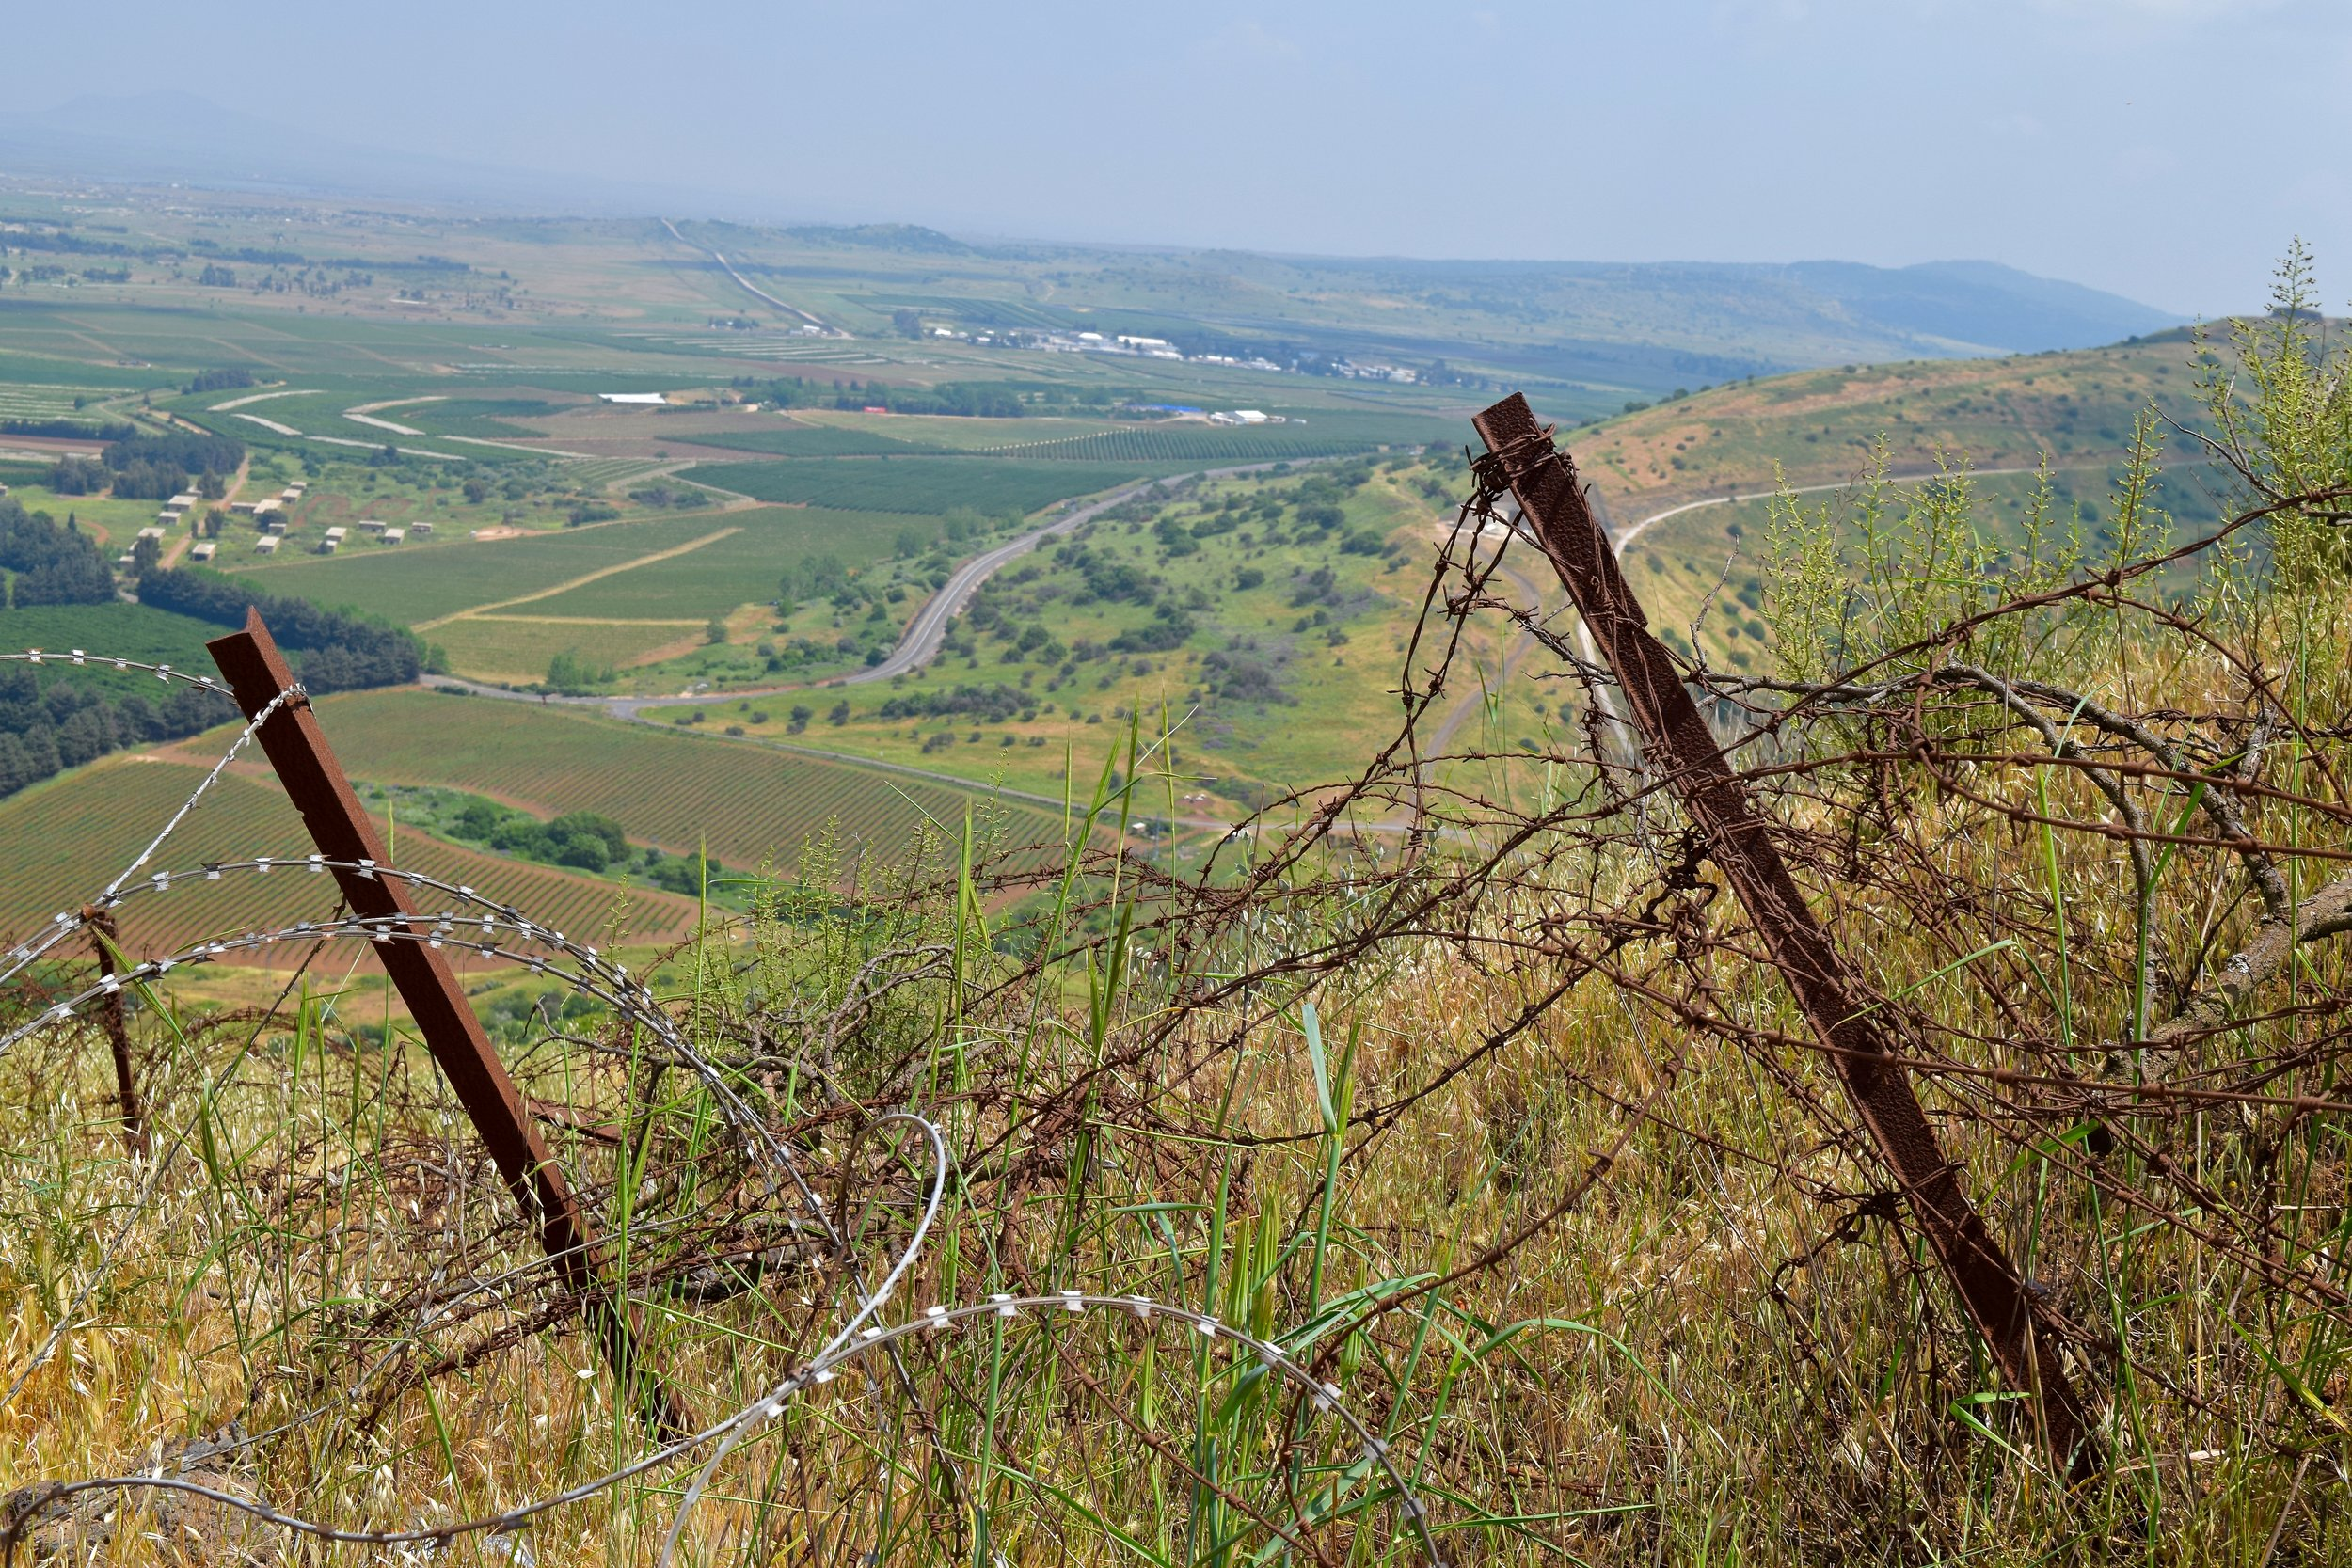 Barbed wire in Mount Bental